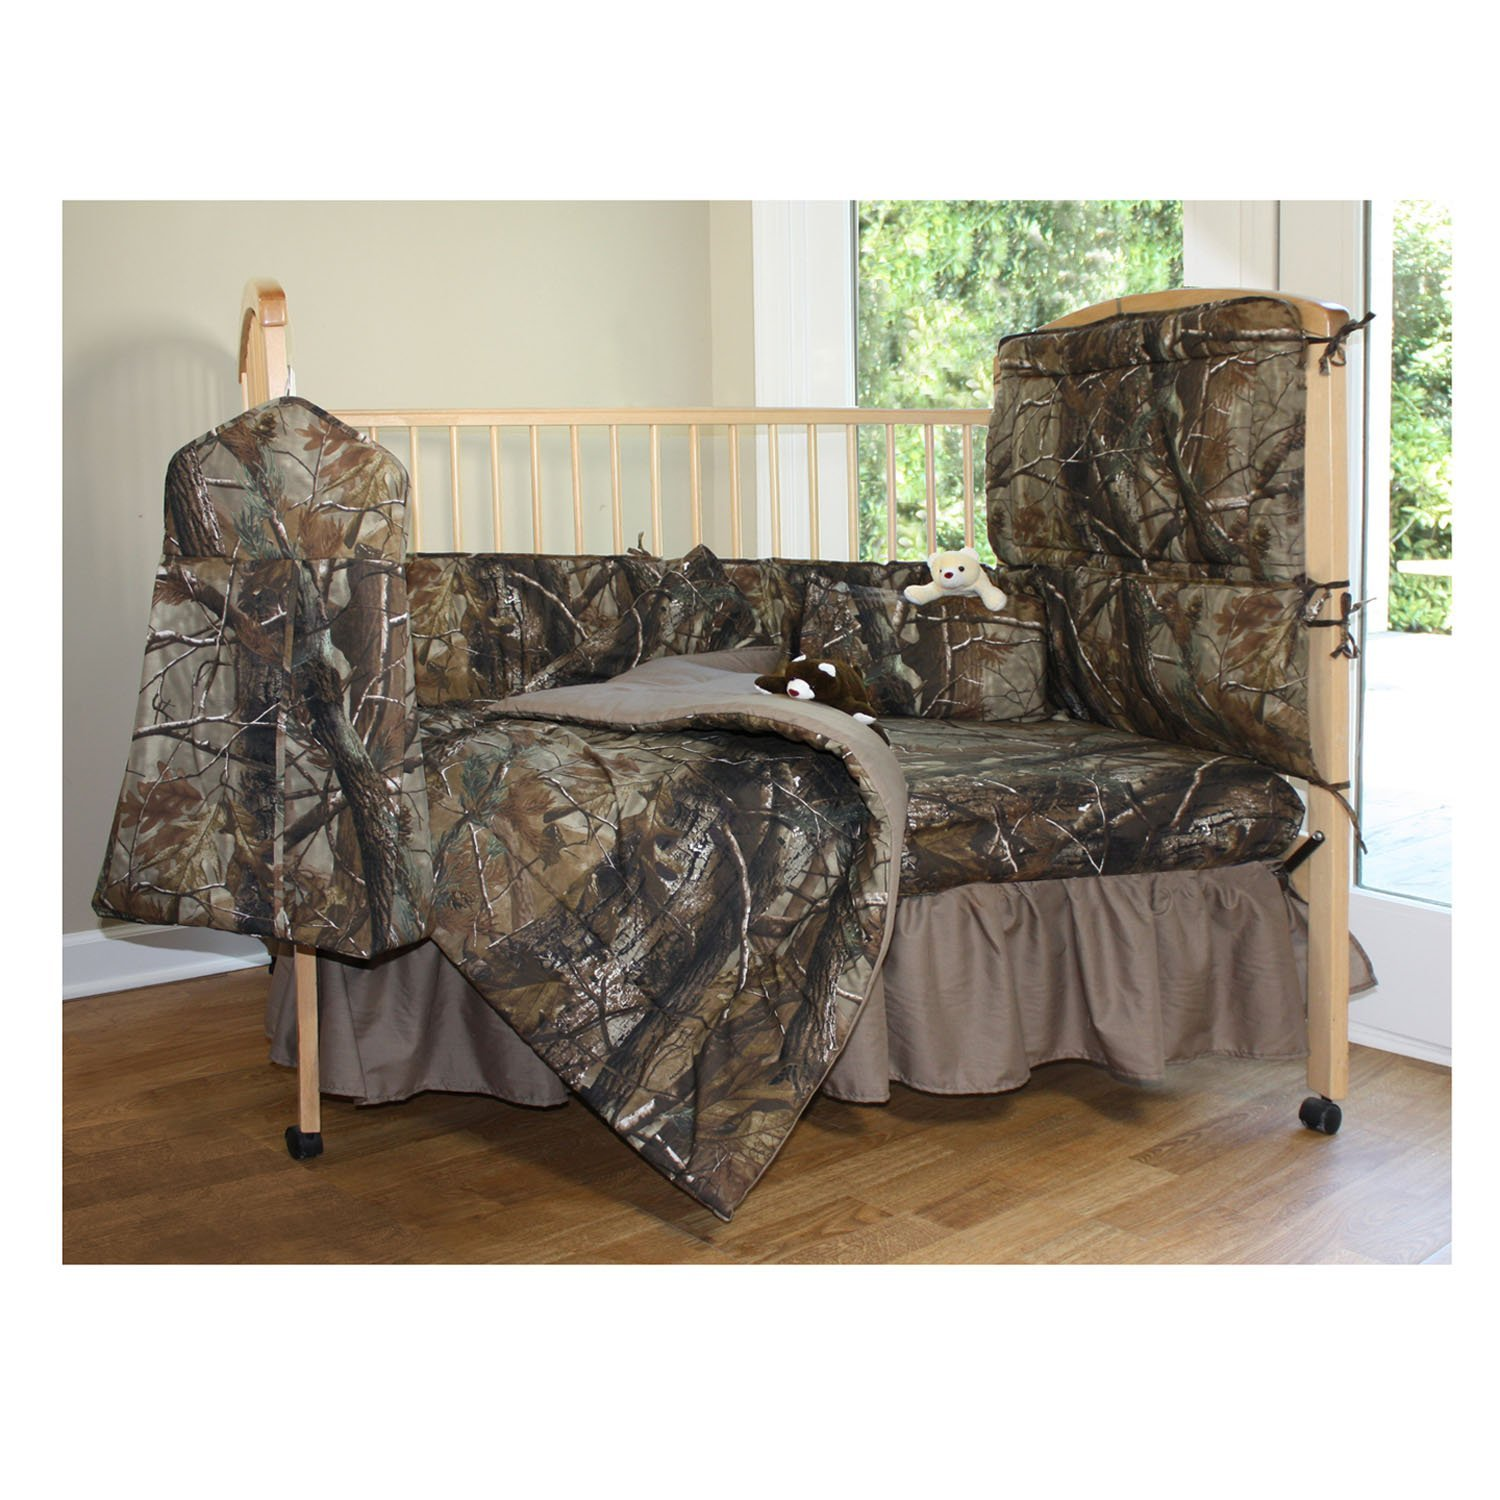 Camo Nursery Crib Bedding Sets For Baby Boys Amp Girls